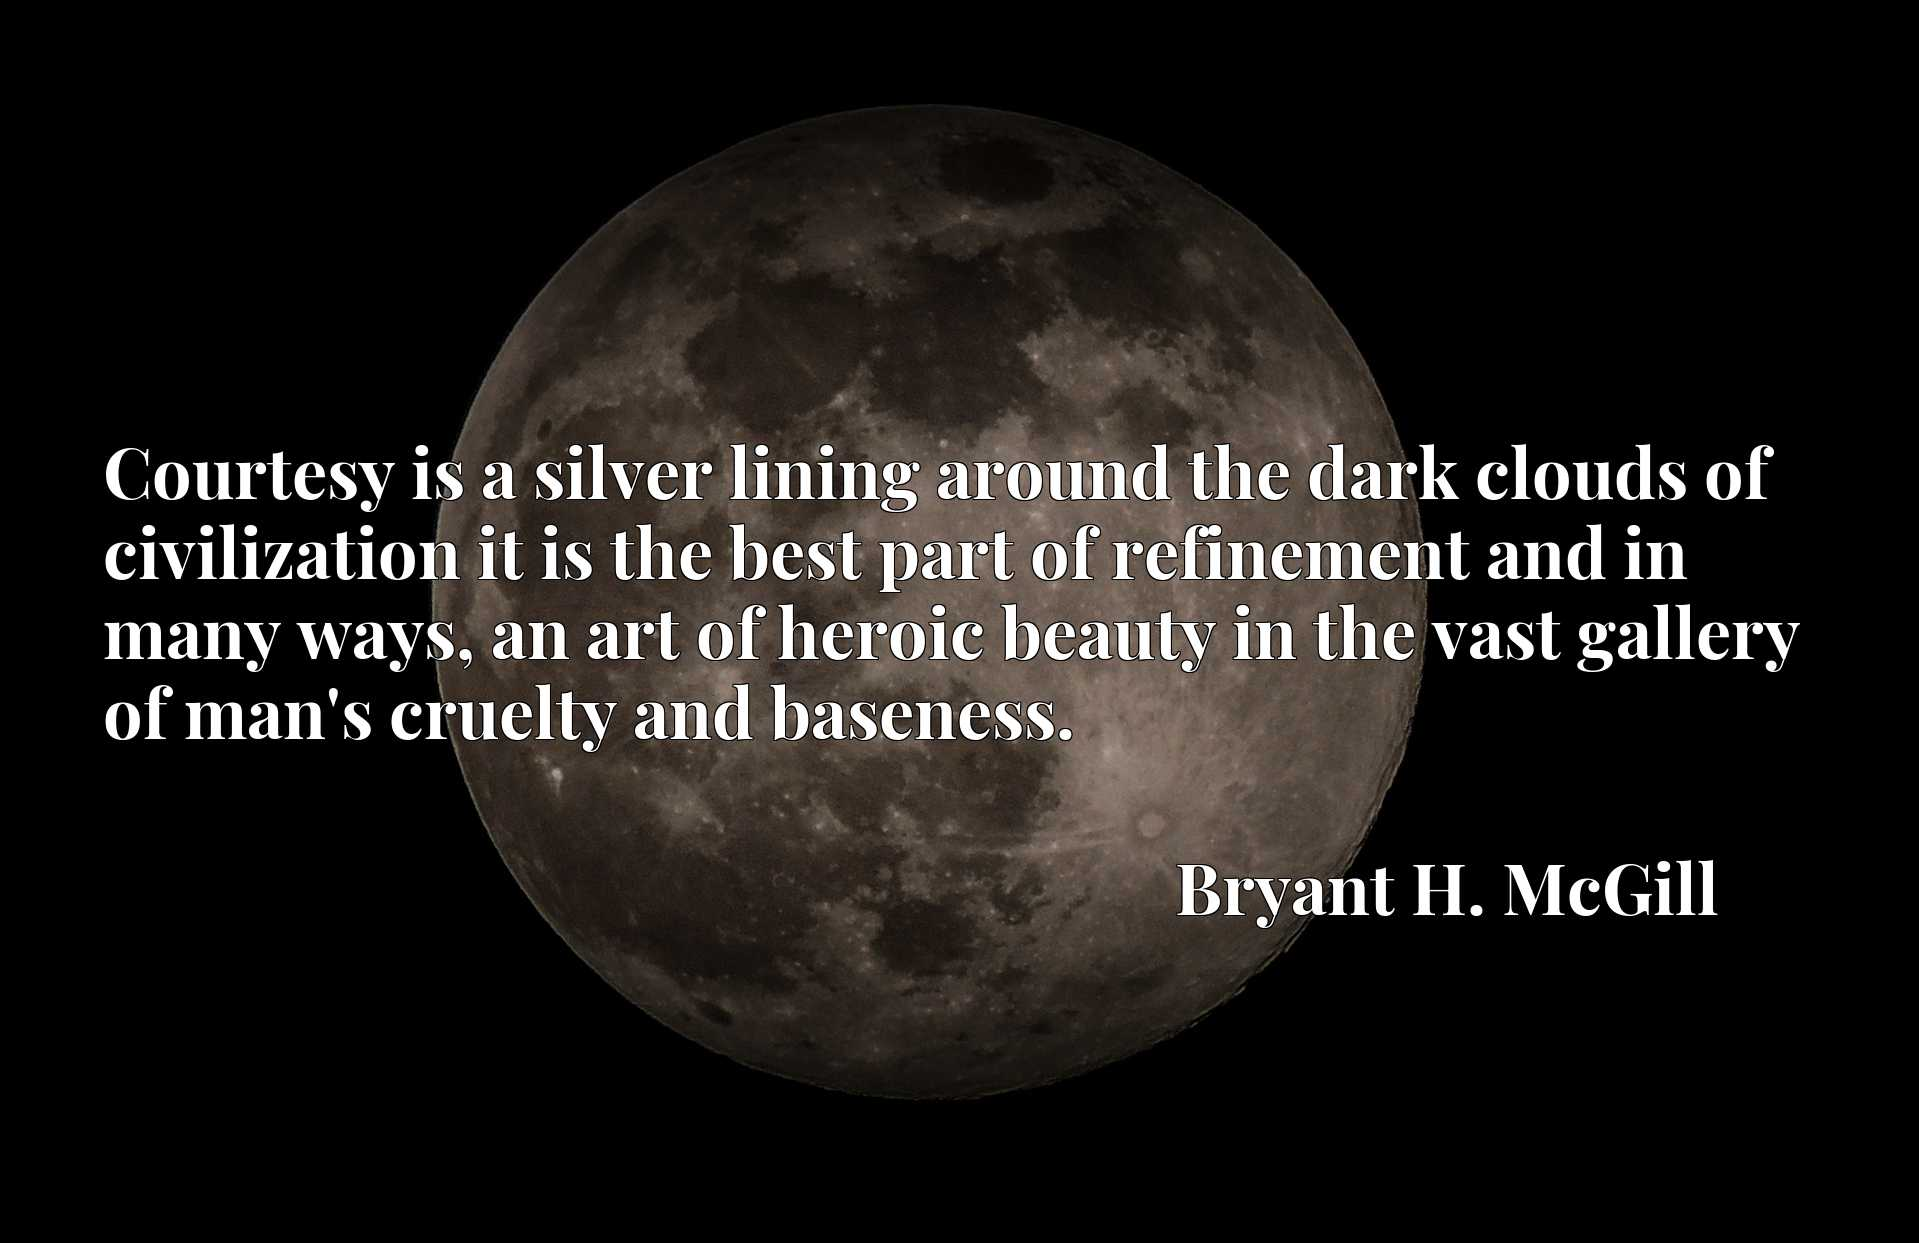 Courtesy is a silver lining around the dark clouds of civilization it is the best part of refinement and in many ways, an art of heroic beauty in the vast gallery of man's cruelty and baseness.